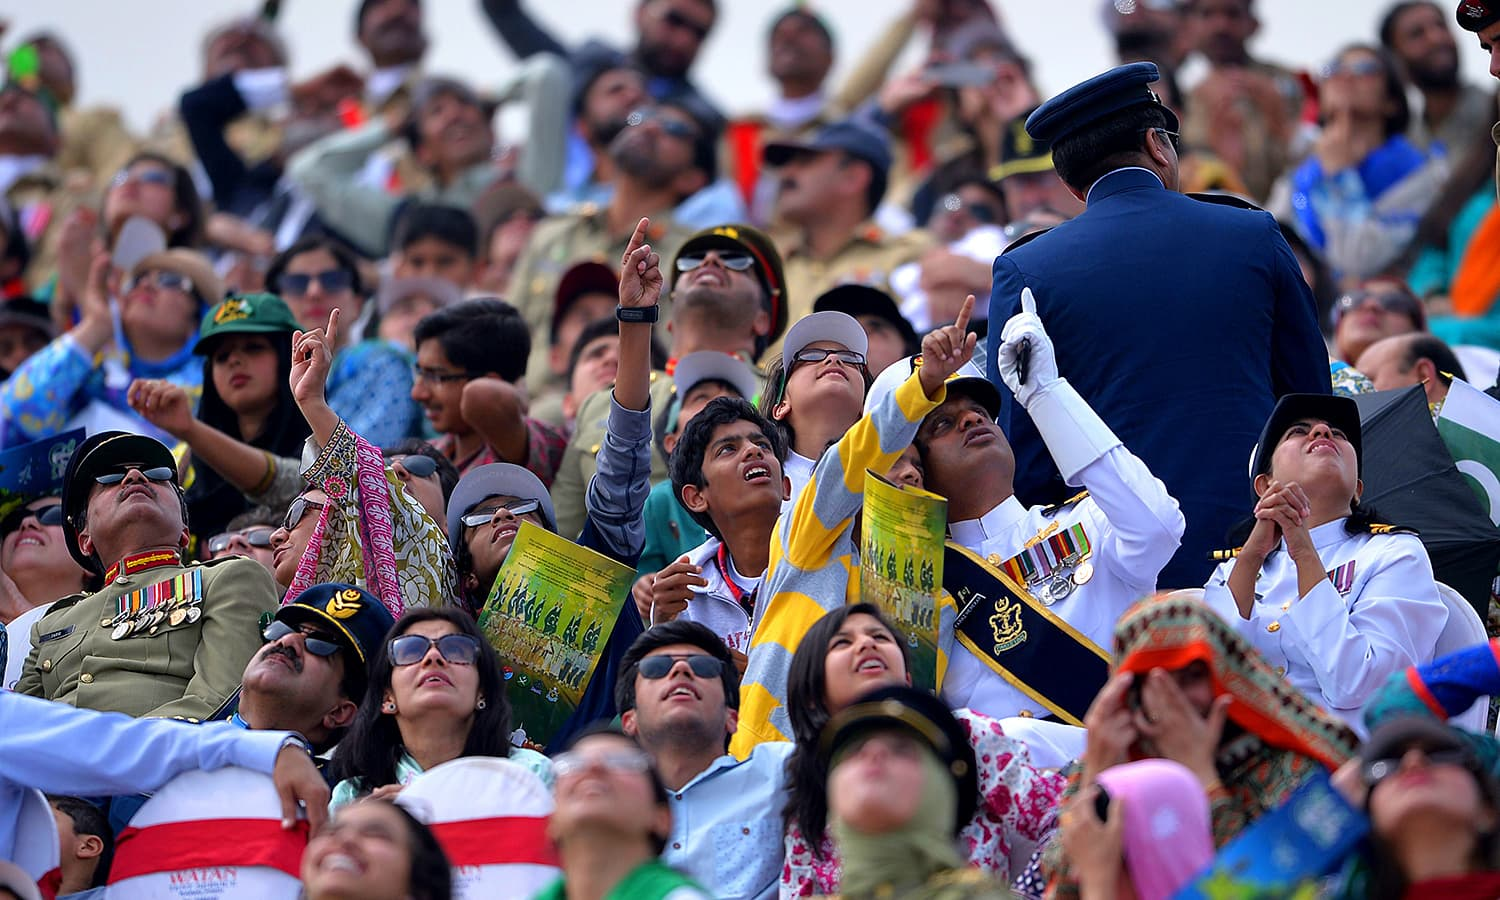 Spectators watch the performance of an F-16 fighter jet during the Pakistan Day military parade. ─ AFP